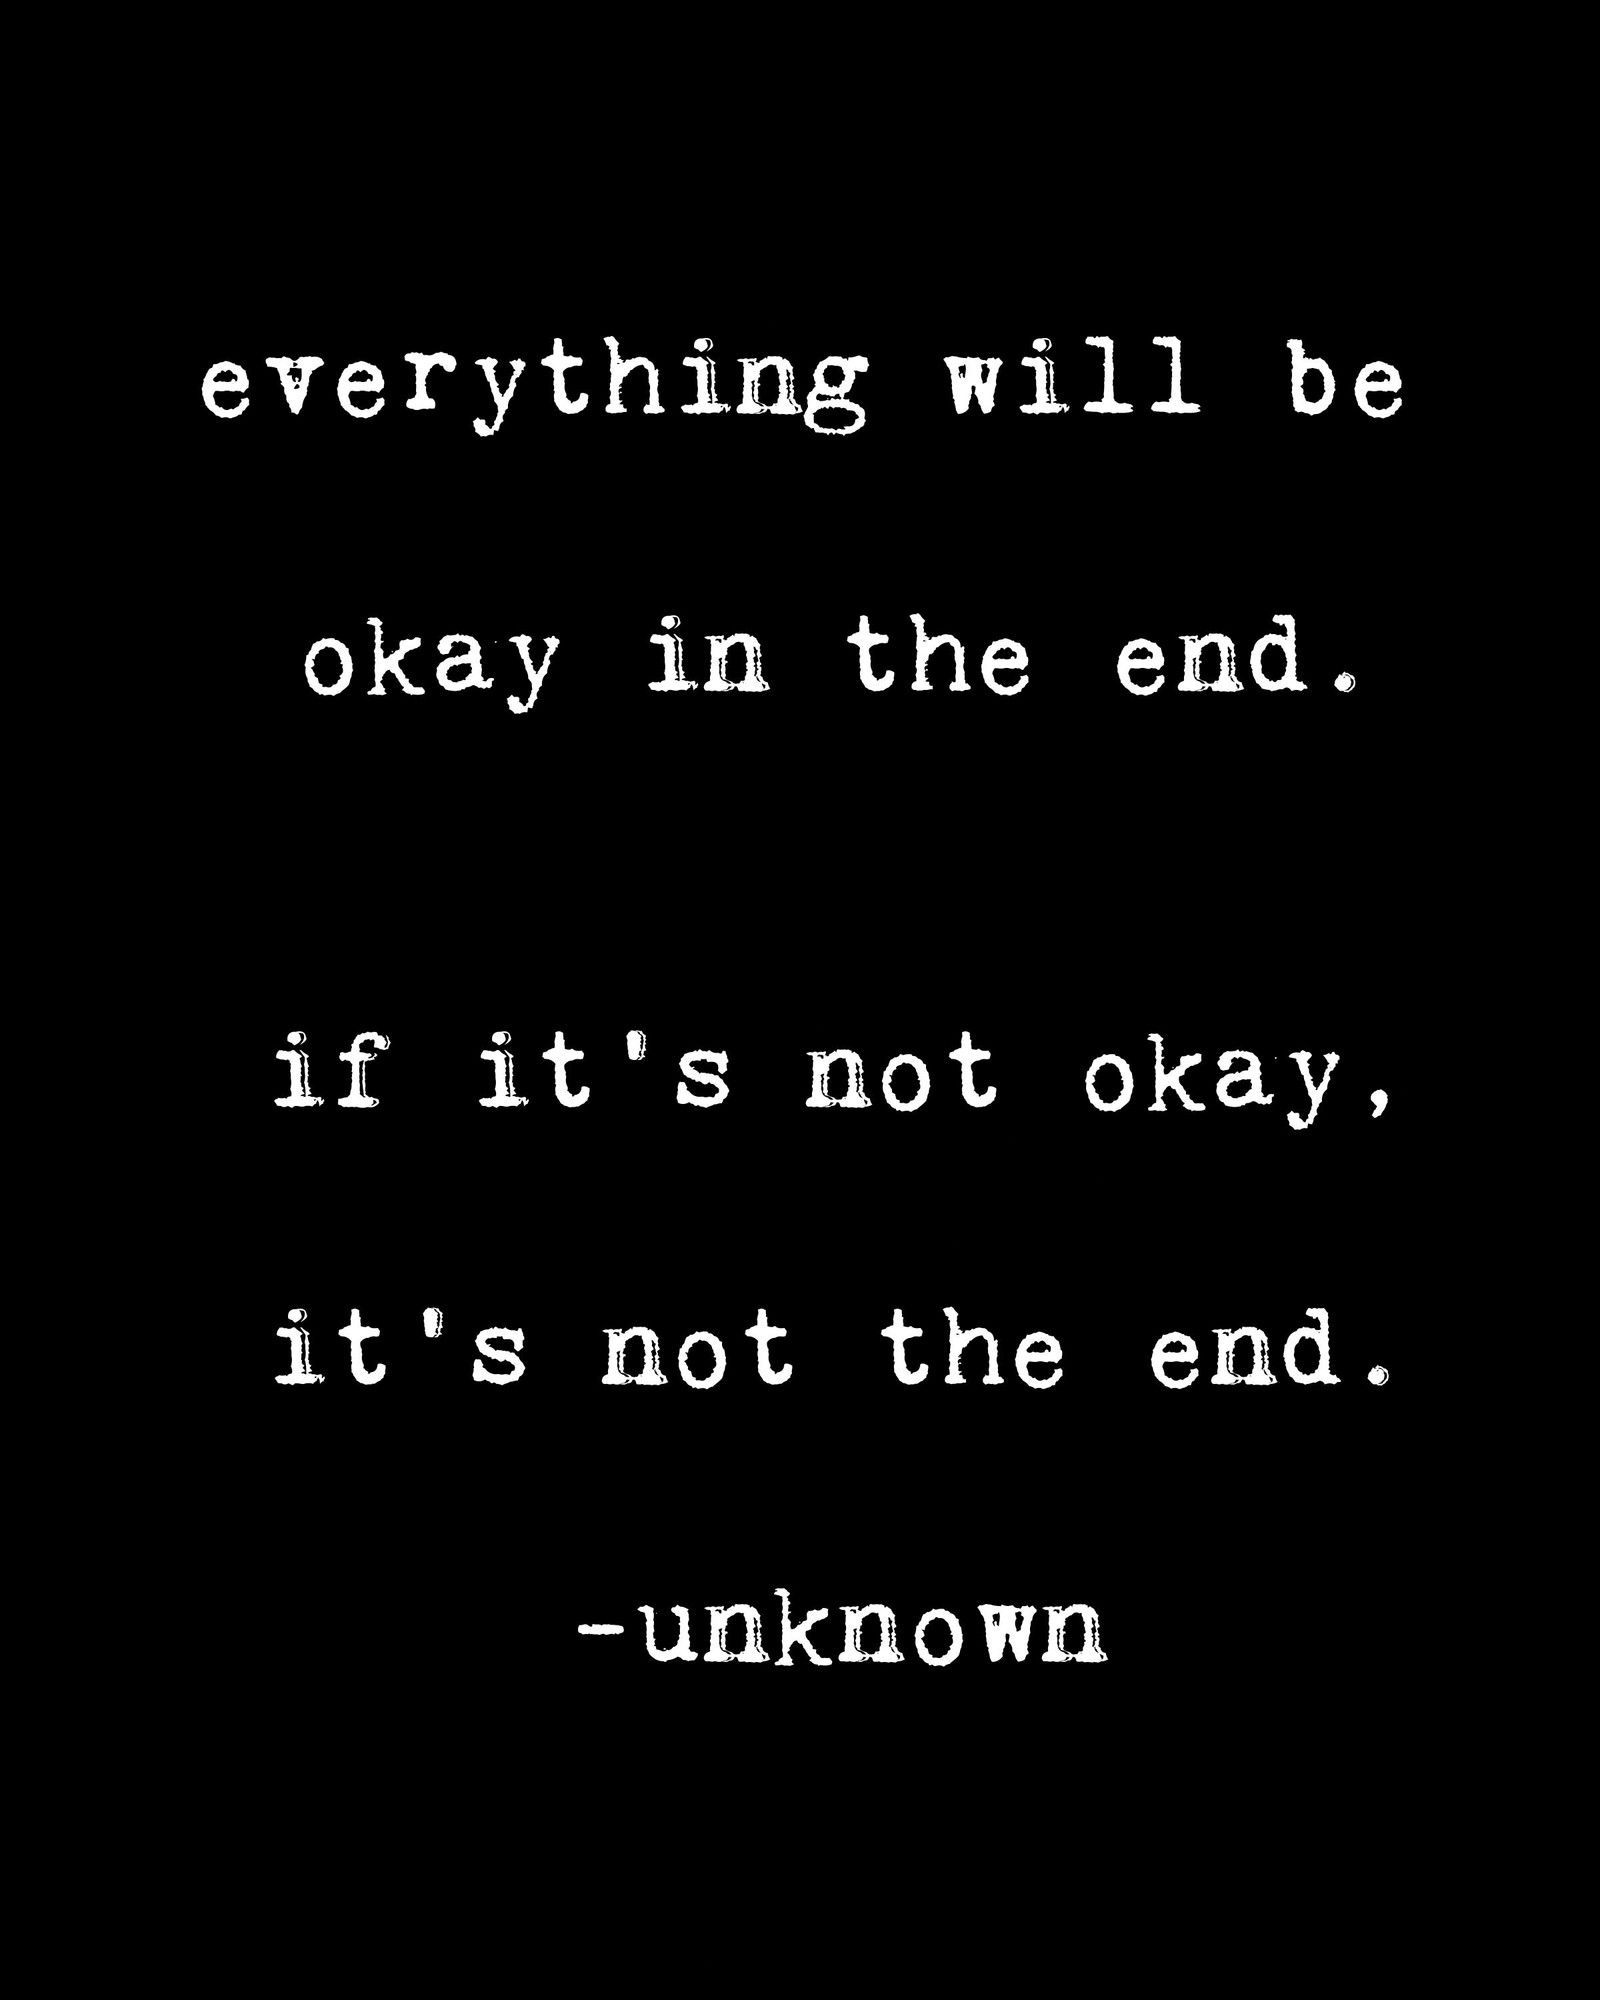 lulusimonSTUDIO Everything Will Be Okay in the End Black and White Inspirational Typography Wall Plaque